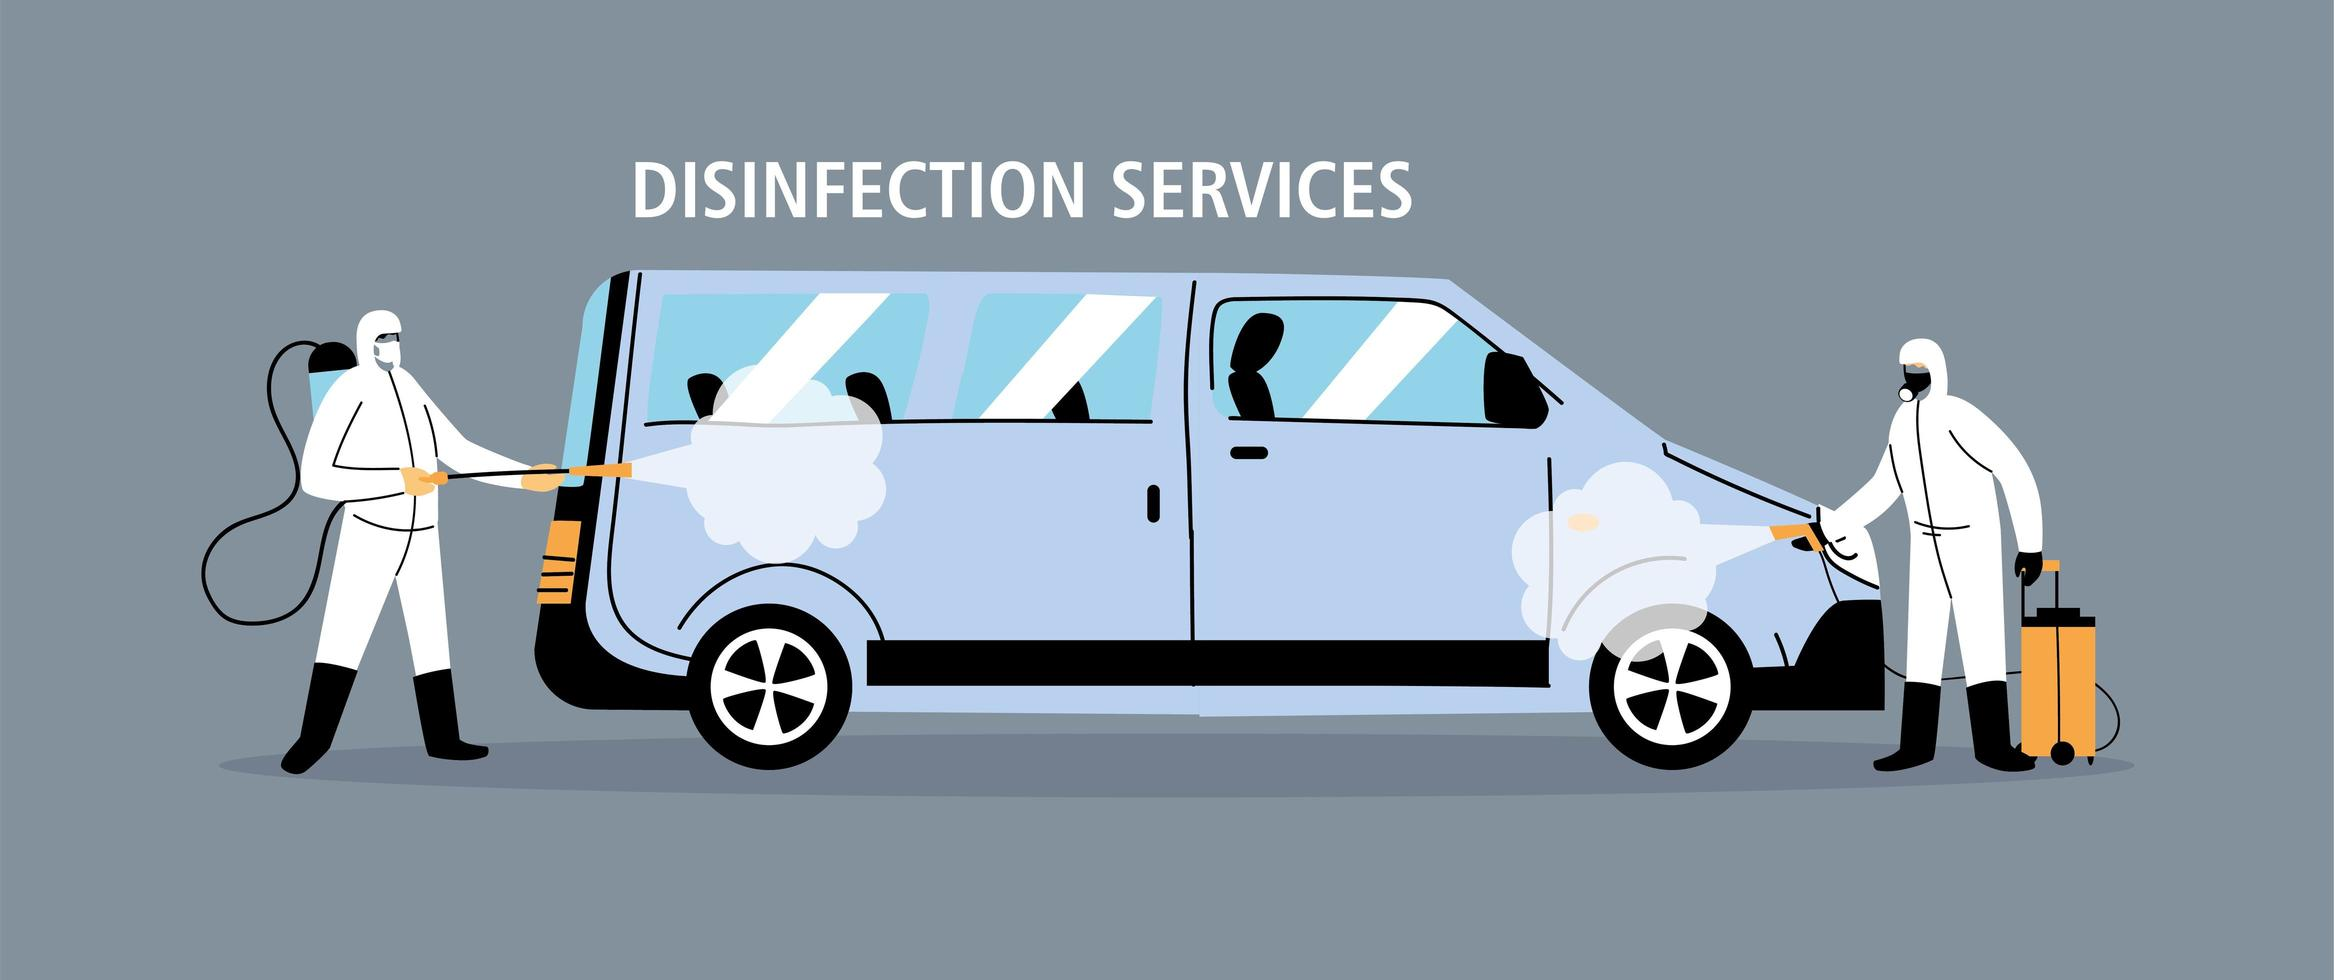 Service van disinfection by coronavirus or covid 19 vector